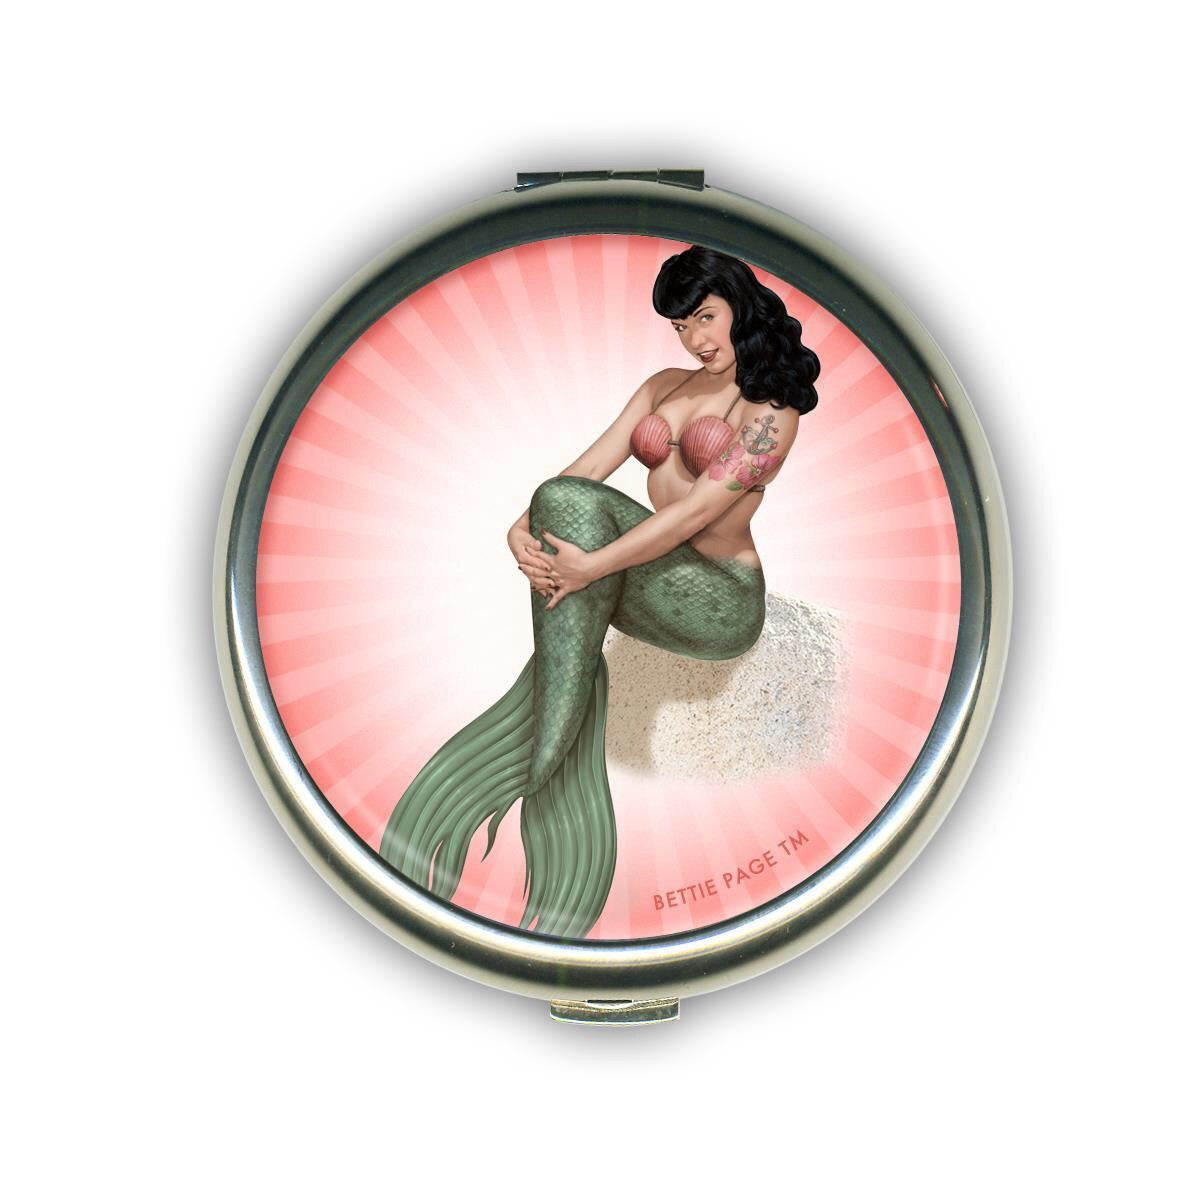 ❤️ BETTIE PAGE MERMAID mirror